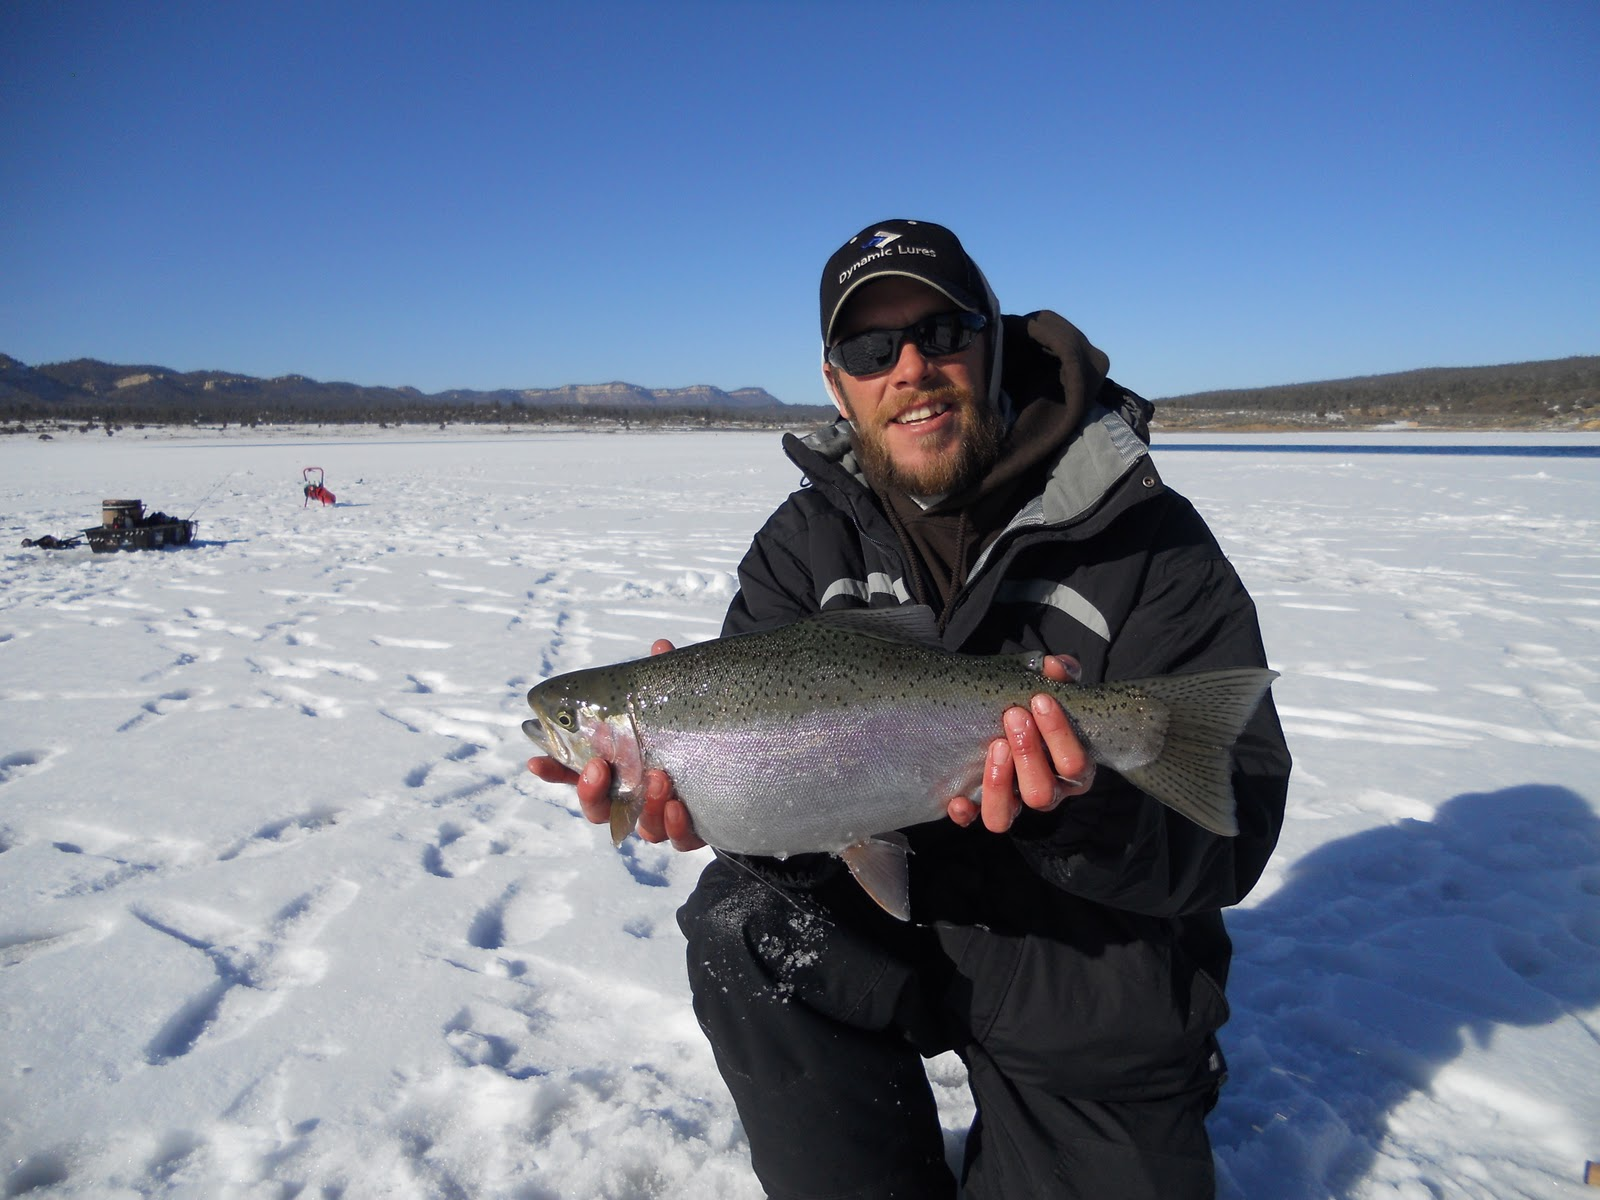 Outdoors nm ice fishing tips tricks from matt pelletier for Fishing new mexico